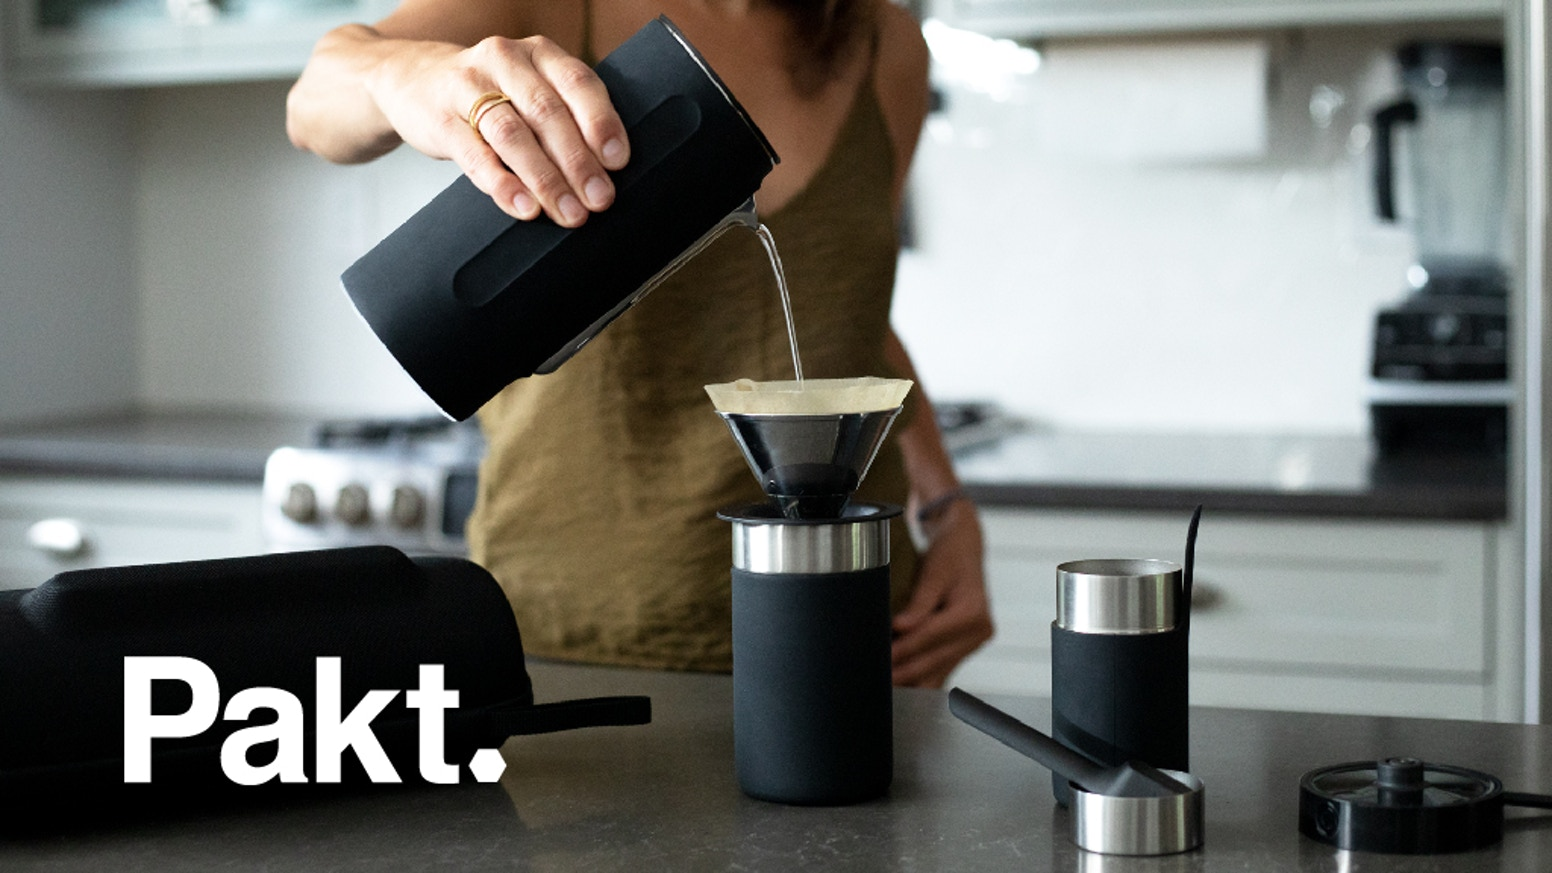 Everything you need to make barista-quality coffee in one sleek, portable package. Electric kettle included.